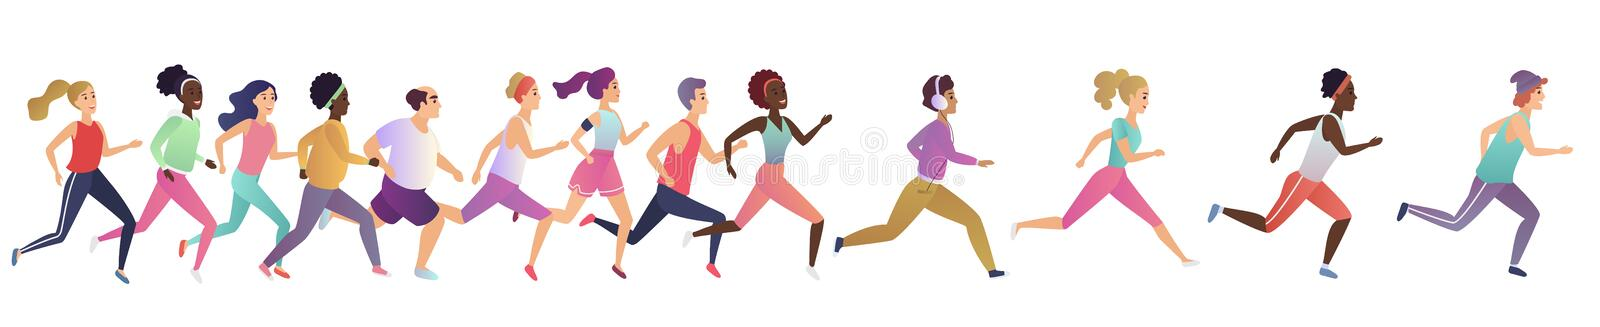 Jogging running people. Sport running group concept. People athlete maraphon runner race, various people runners. royalty free illustration